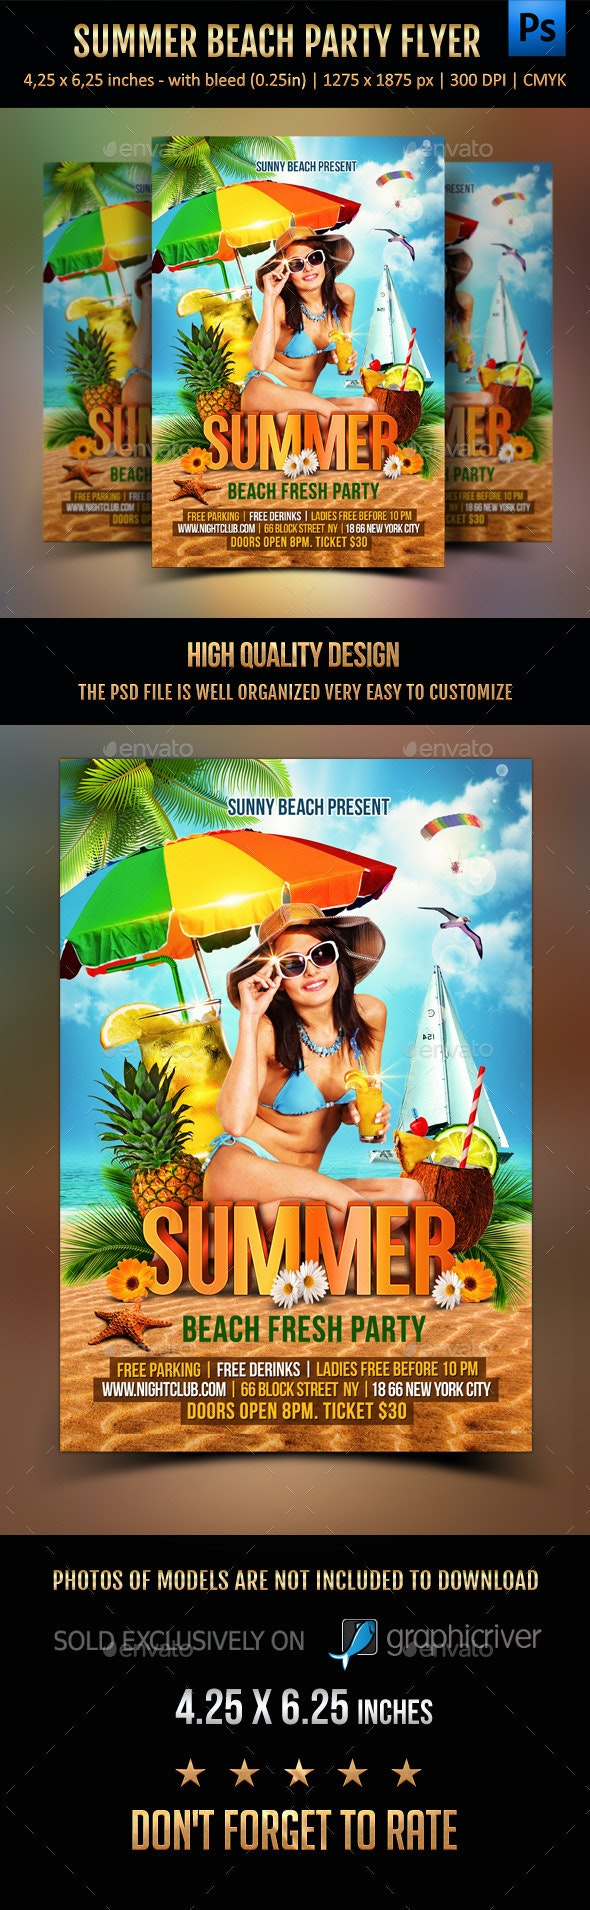 Summer Beach Party Flyer - Holidays Events